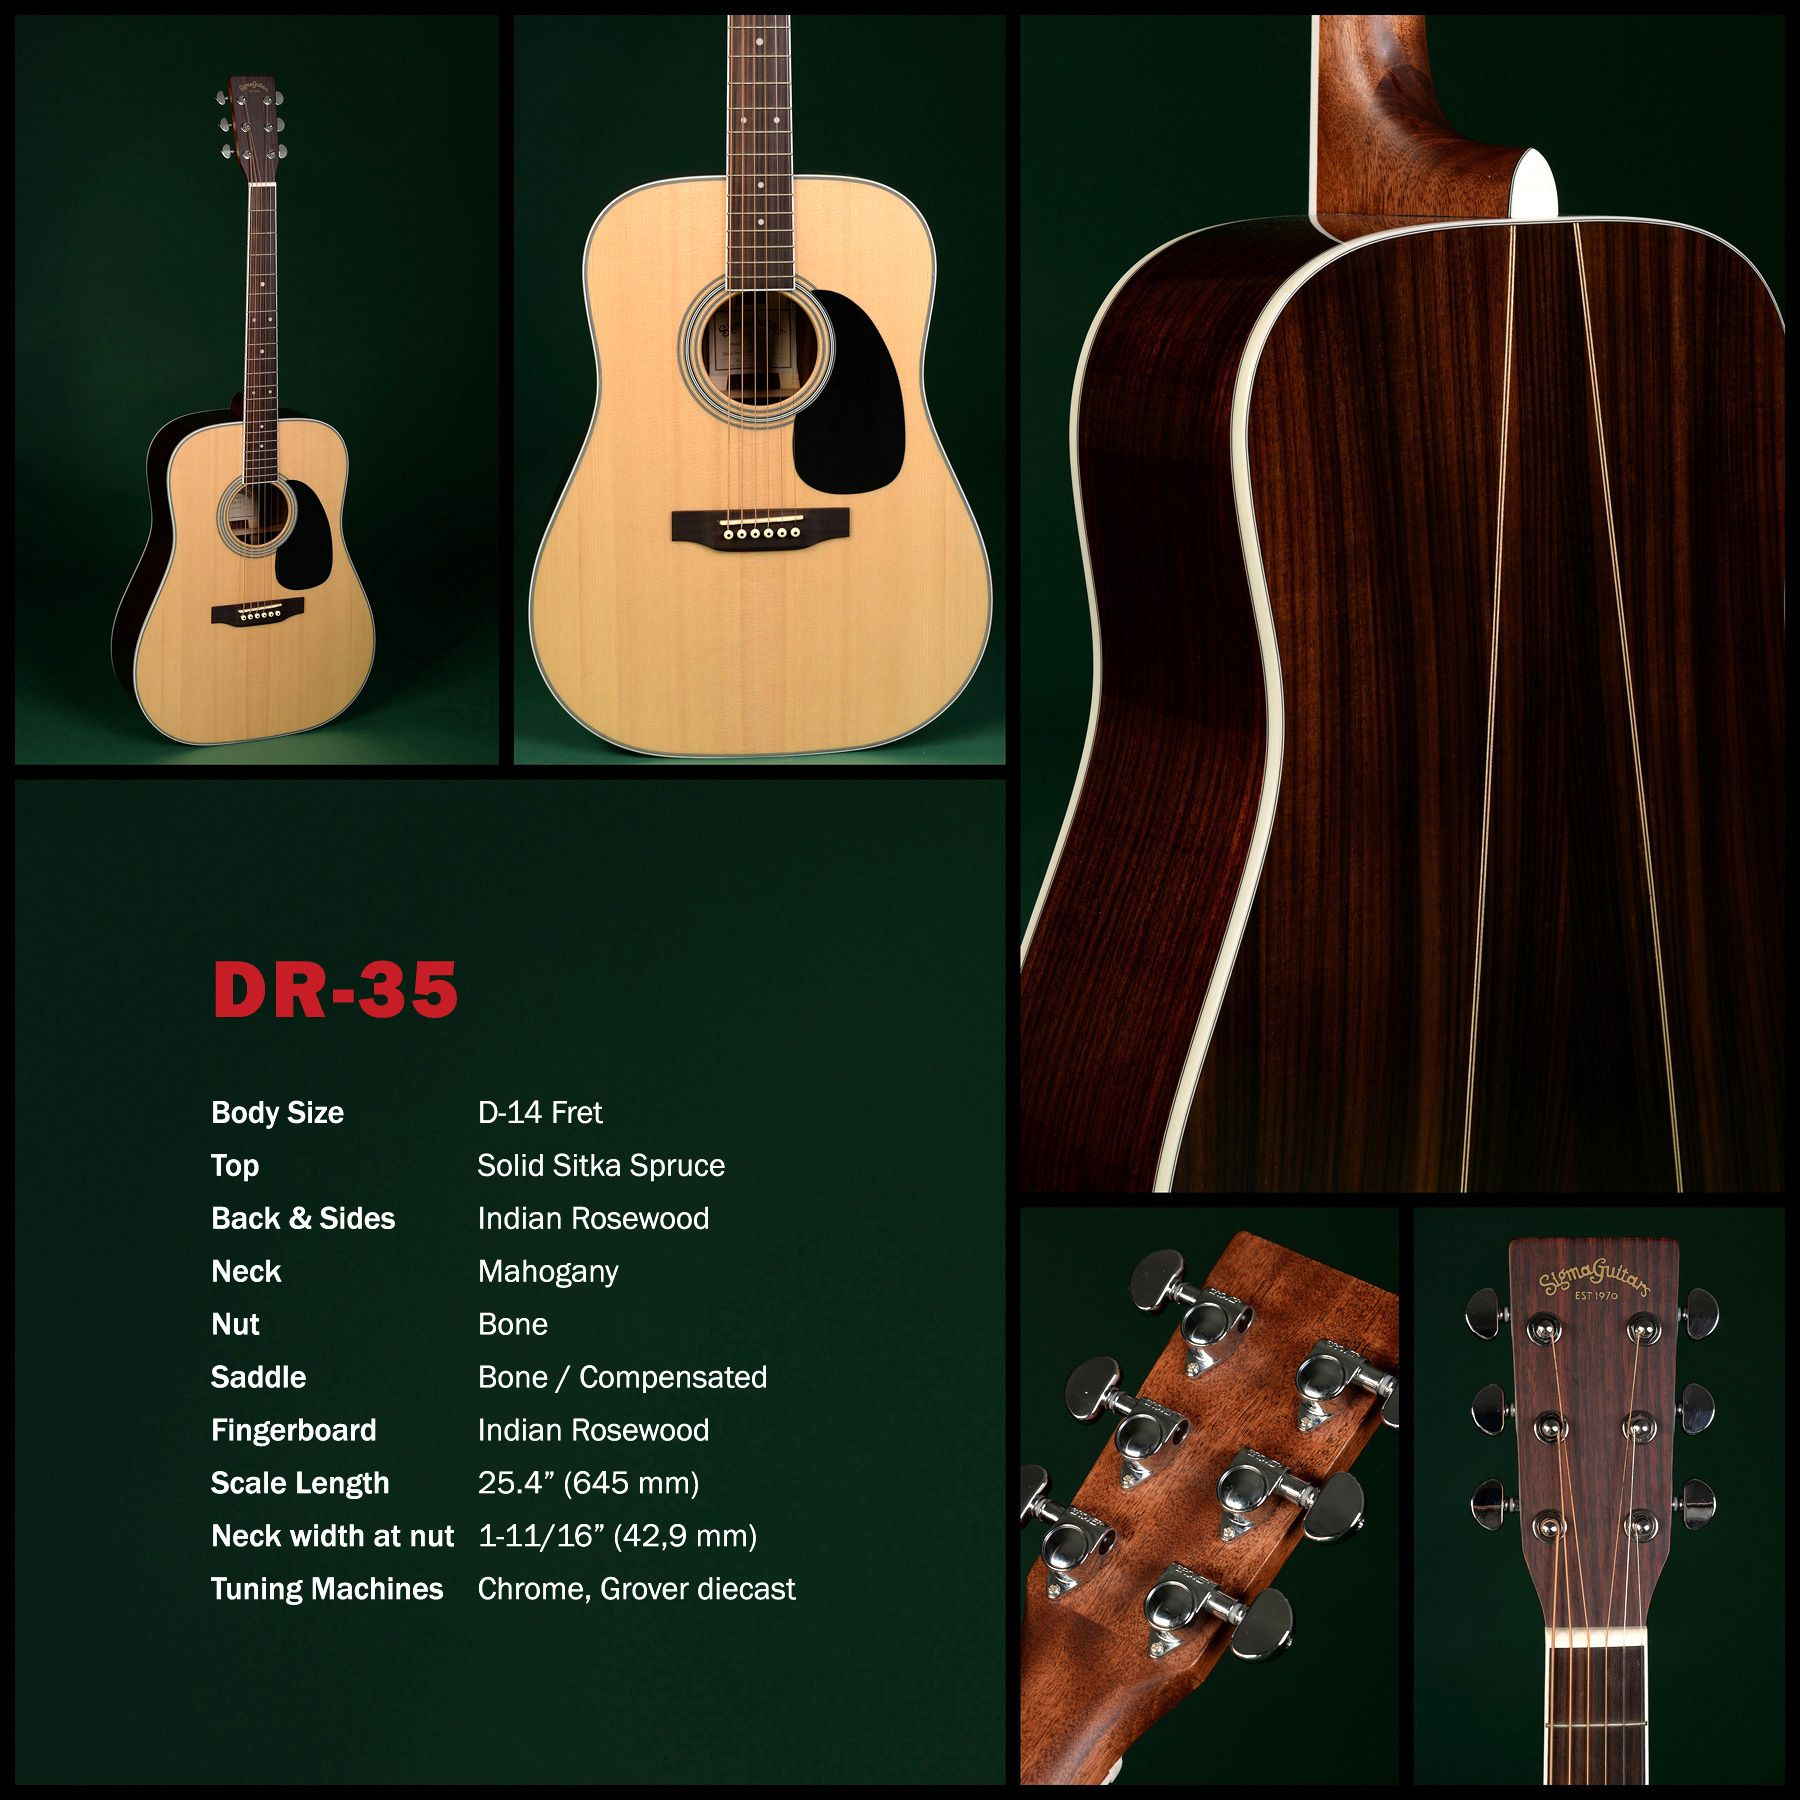 The Sigma Story Goes On Dr 35 Guitar Martin Acoustic Guitar Acoustic Guitar